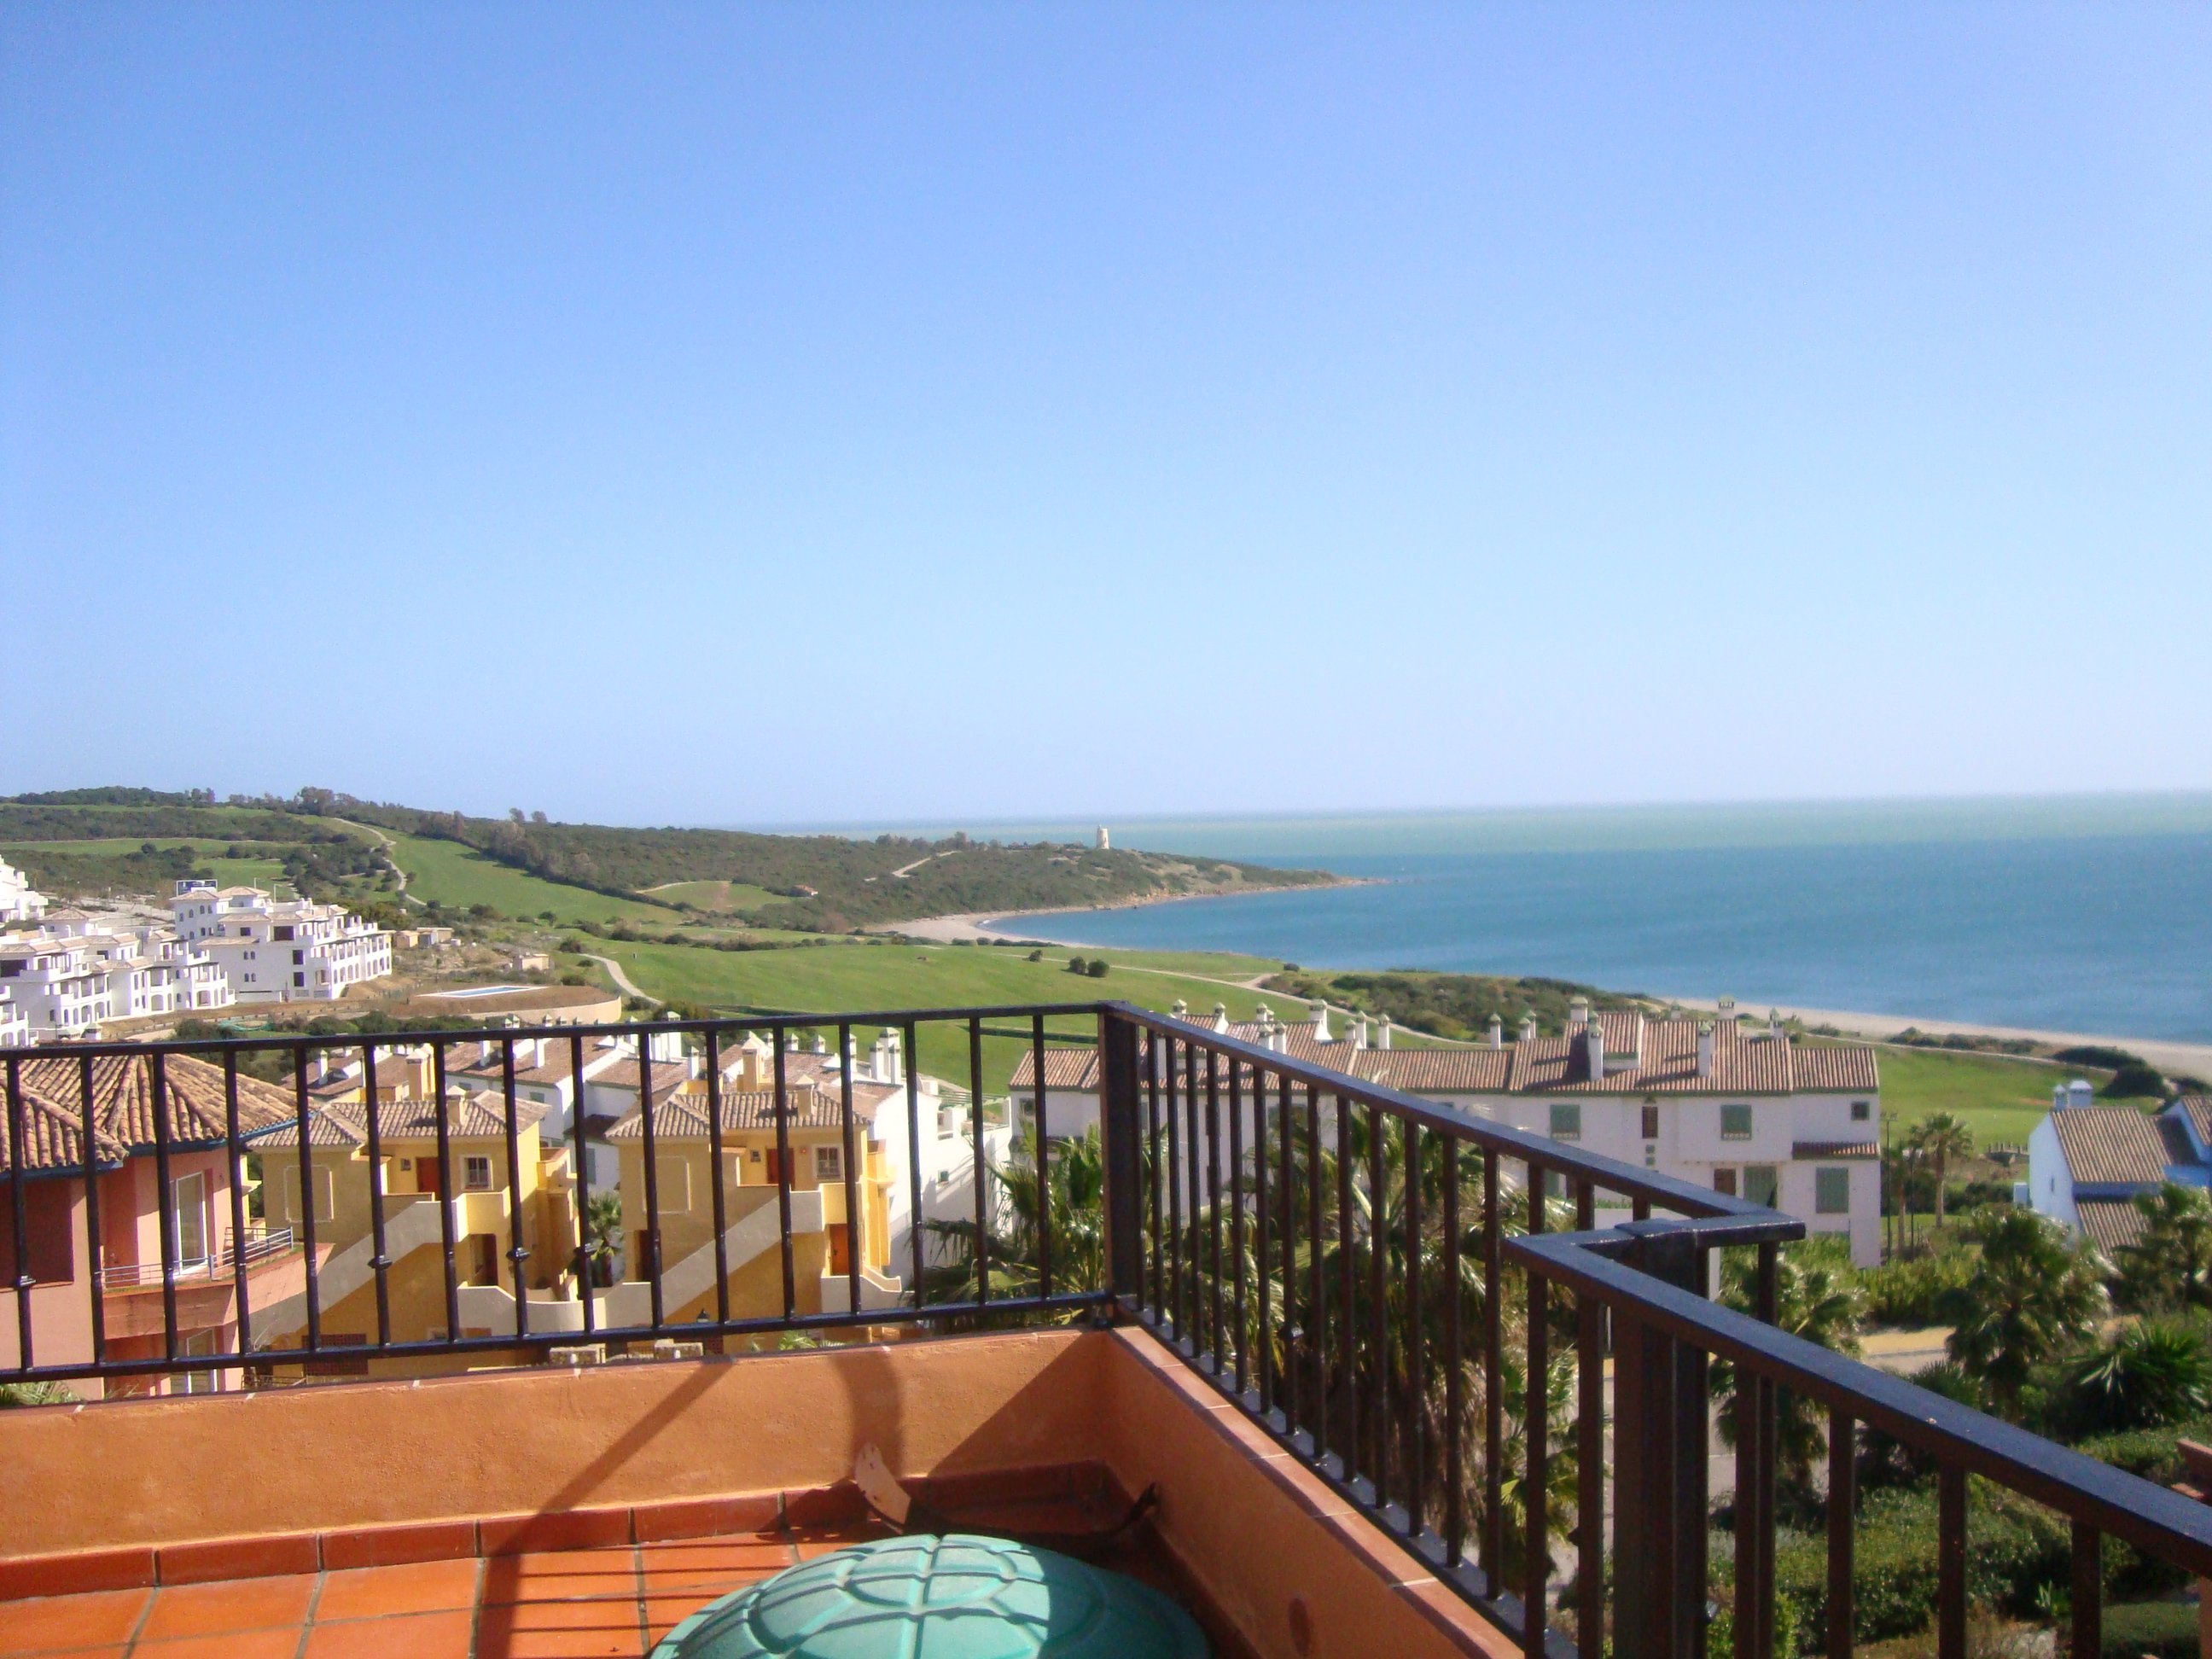 2 Bed, 2 Bath Penthouse, Great Terrace & Views